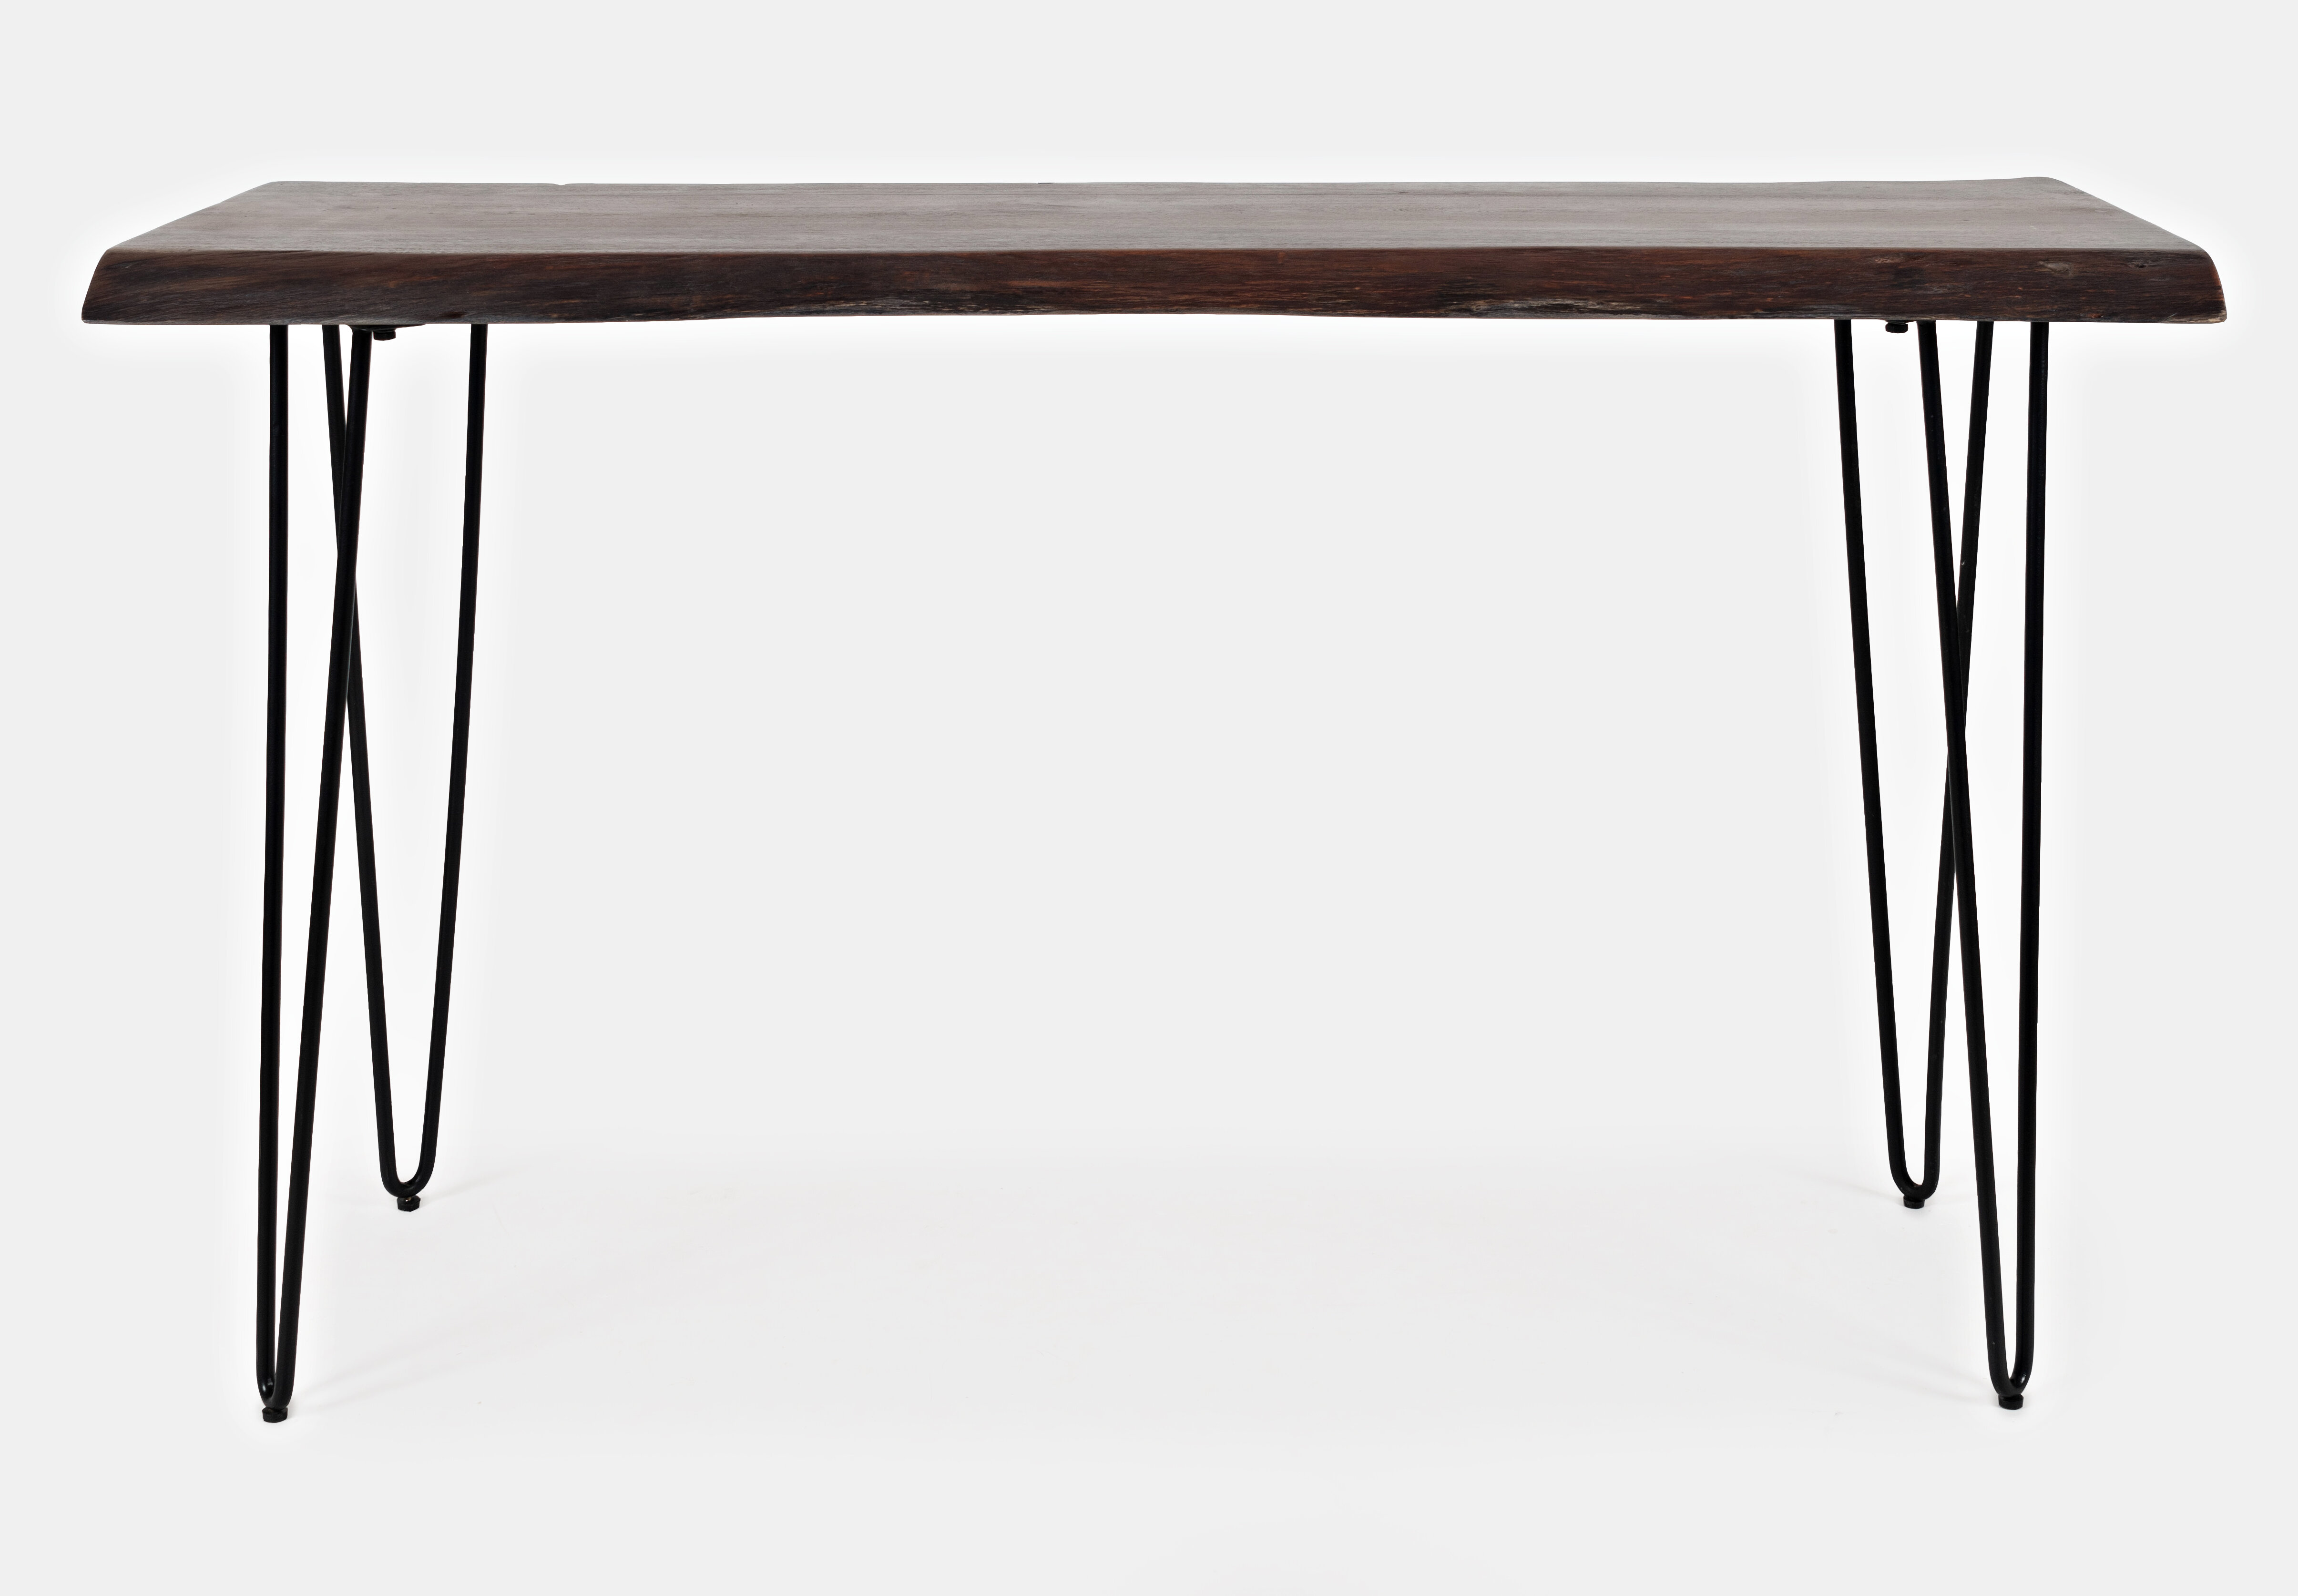 Union Rustic Lolotoe 50 Solid Wood Console Table Reviews Wayfair